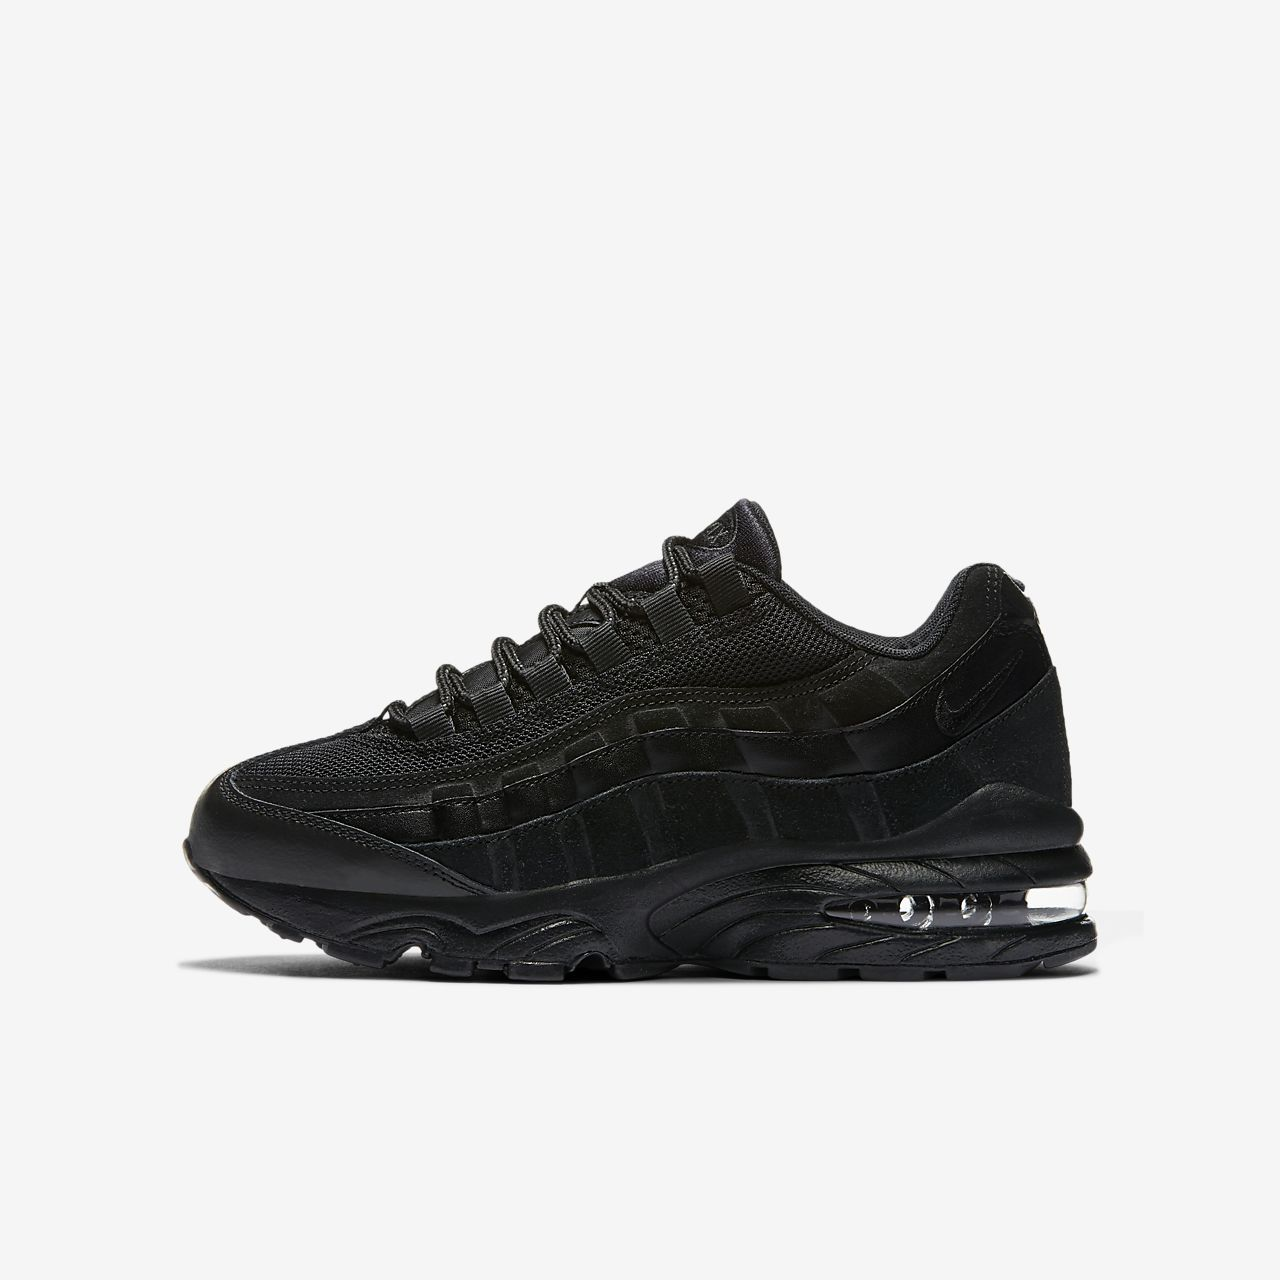 95 nike air max black nz